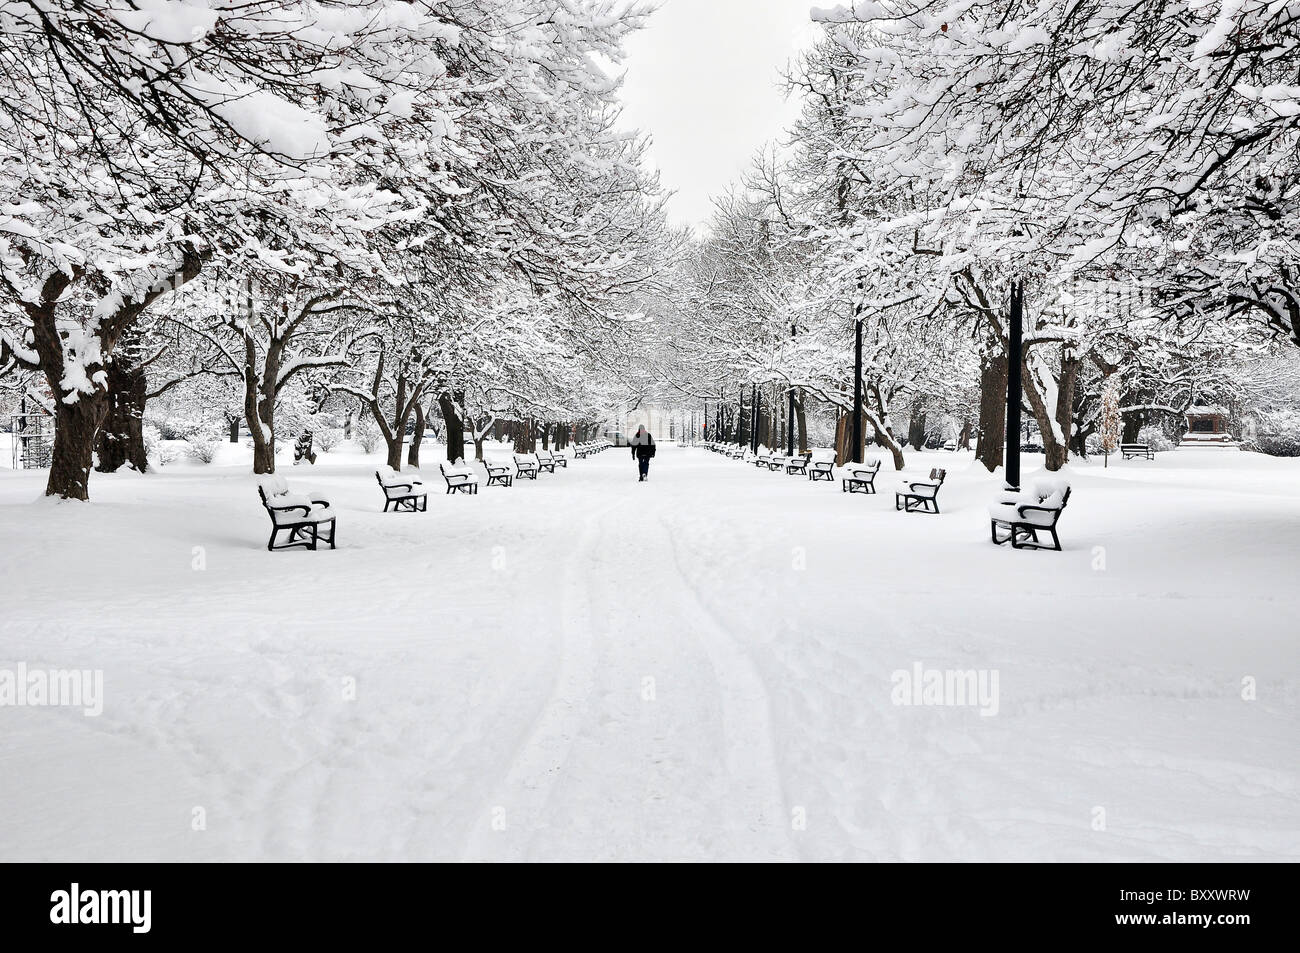 A man walking in a winter morning after snow storm in Albany Washington Park, New York. - Stock Image